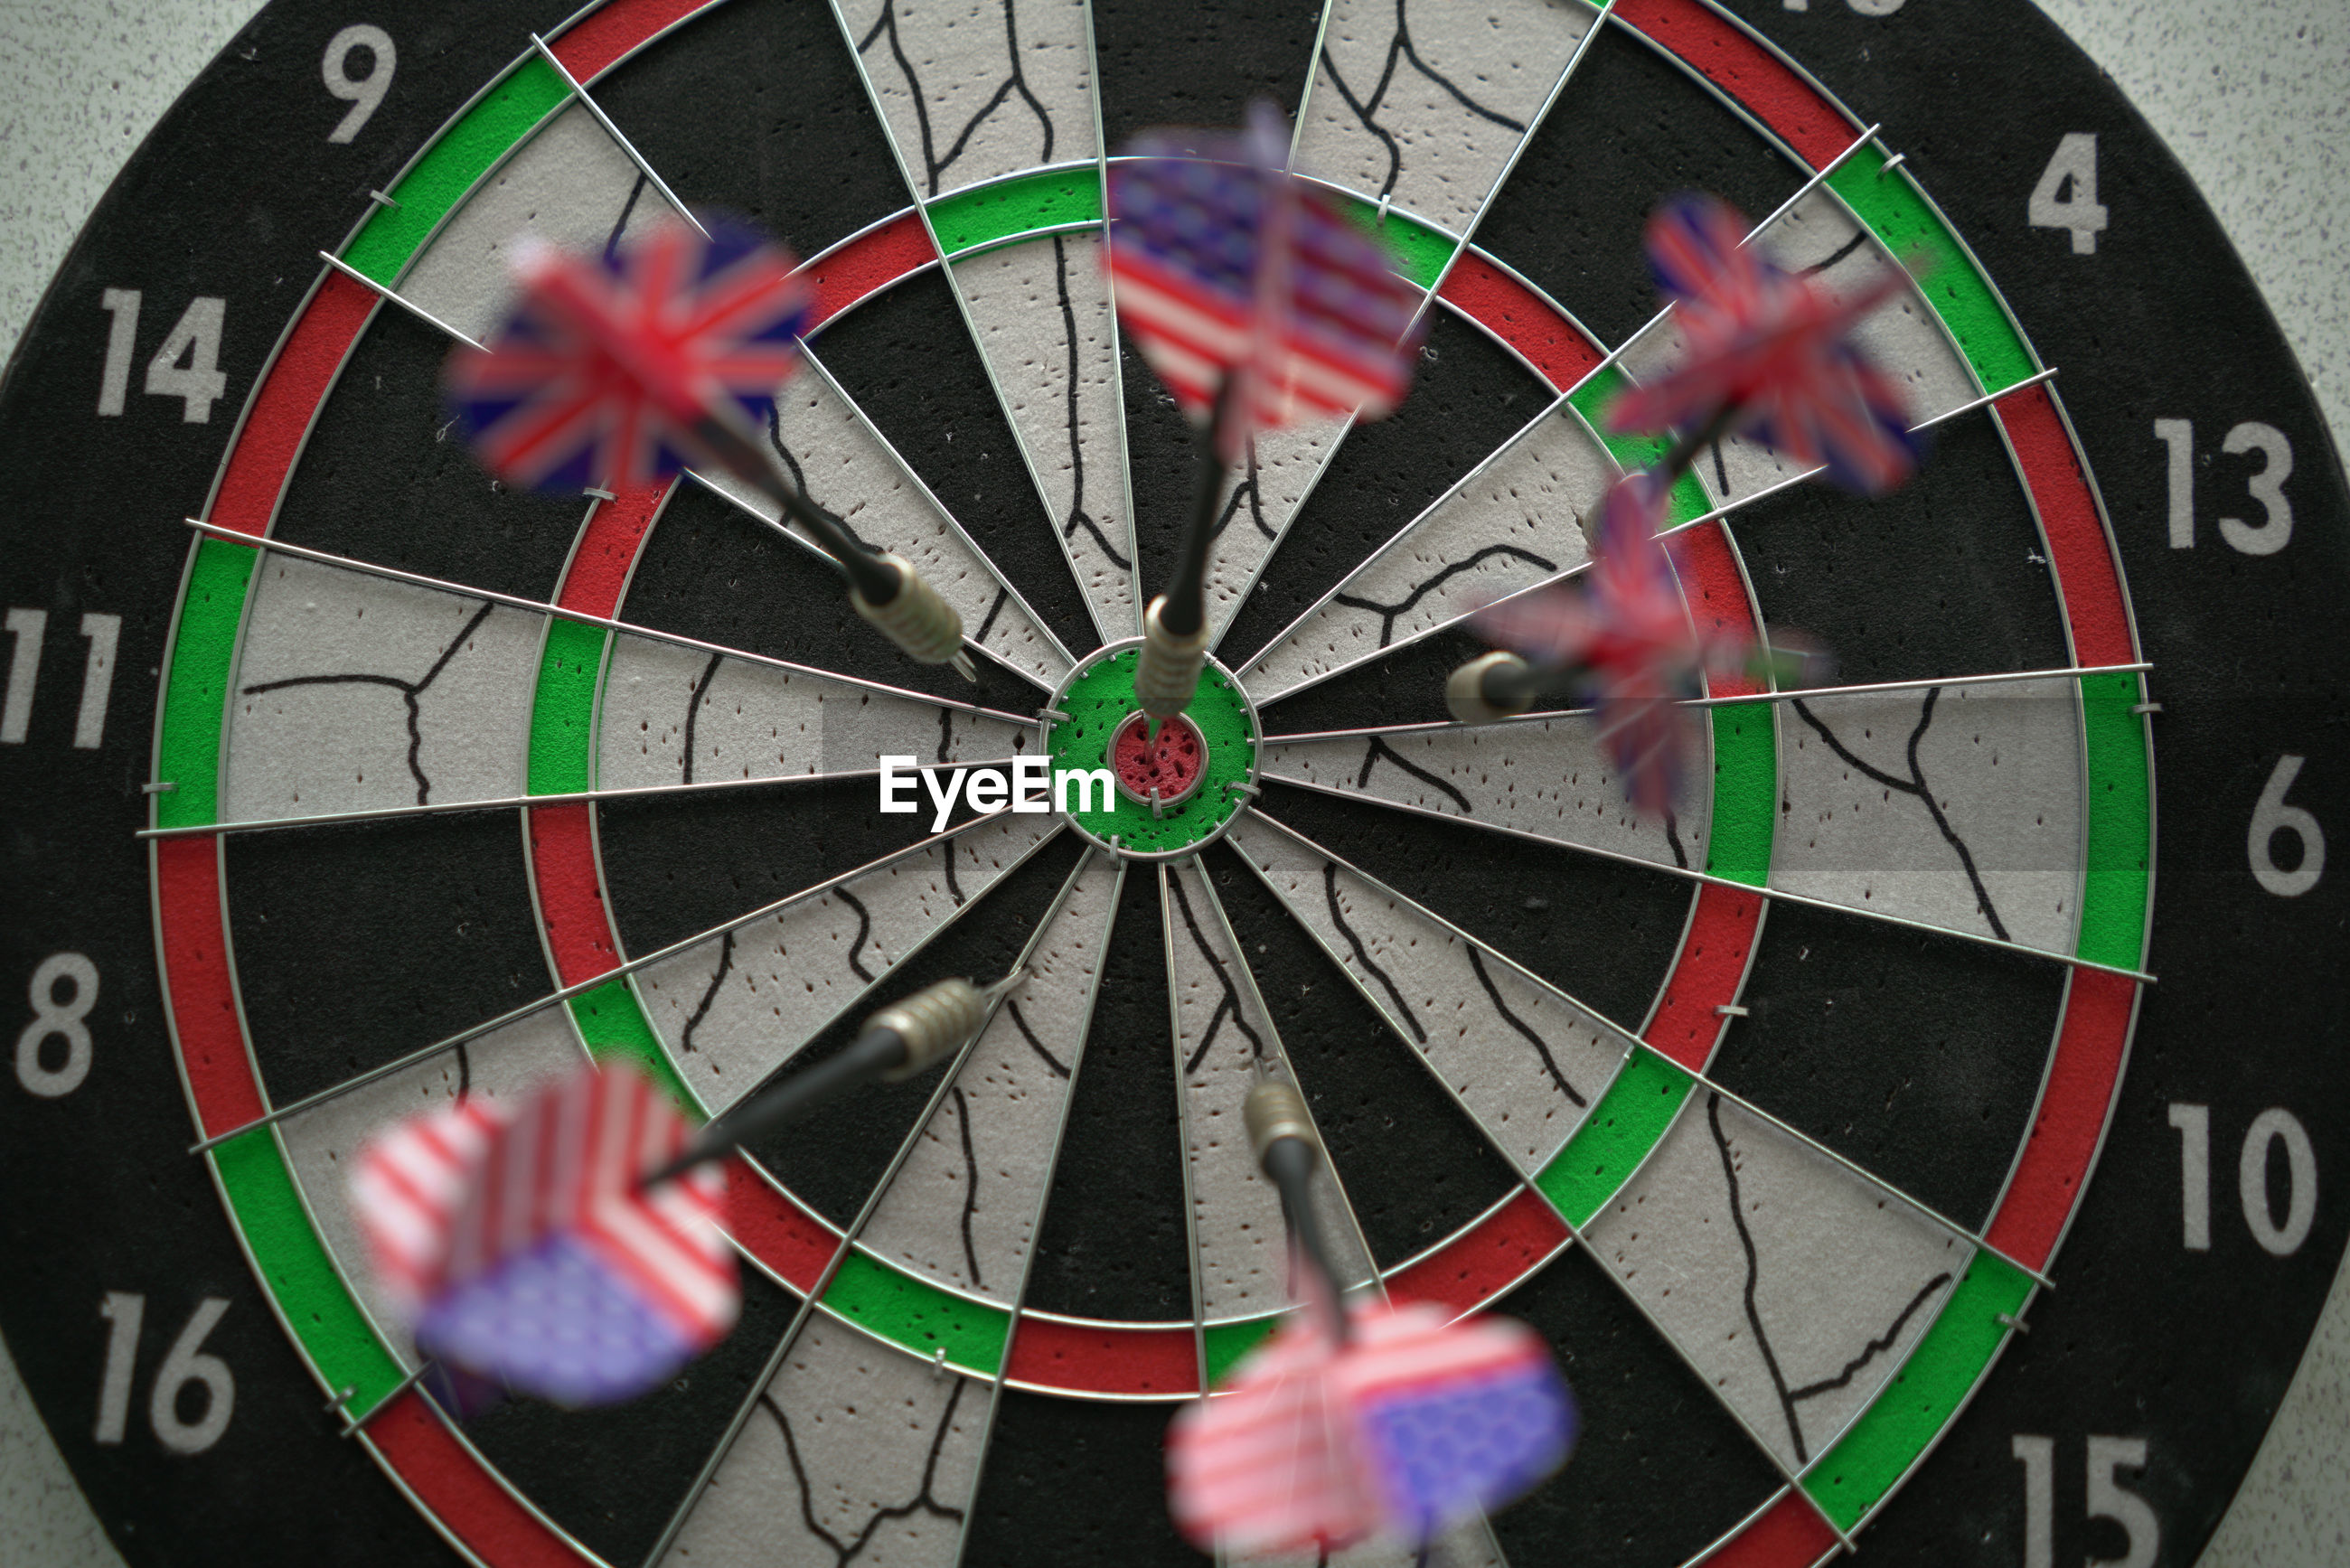 Blurred motion of darts on target